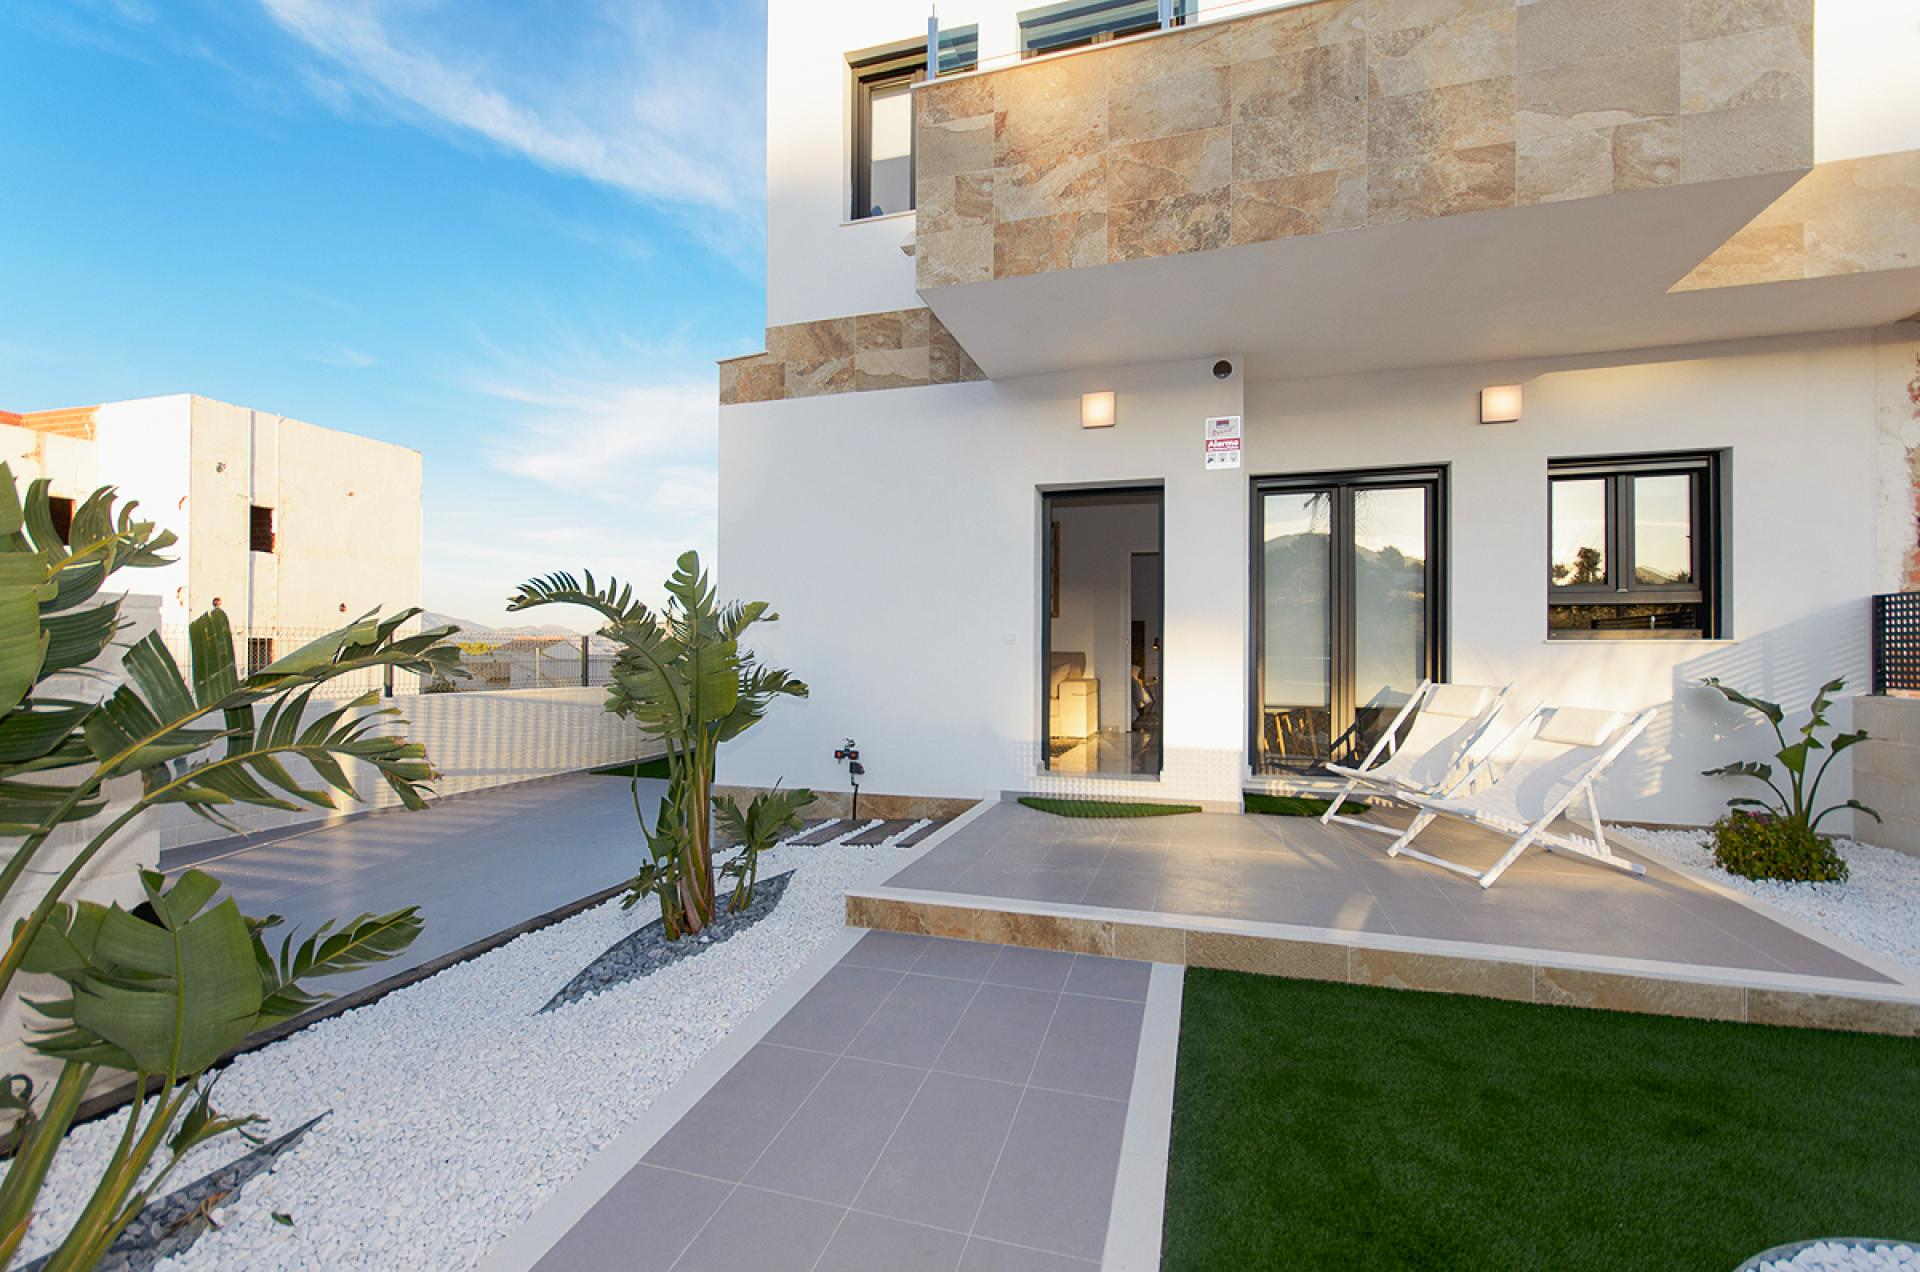 Villa in Polop (Alicante)